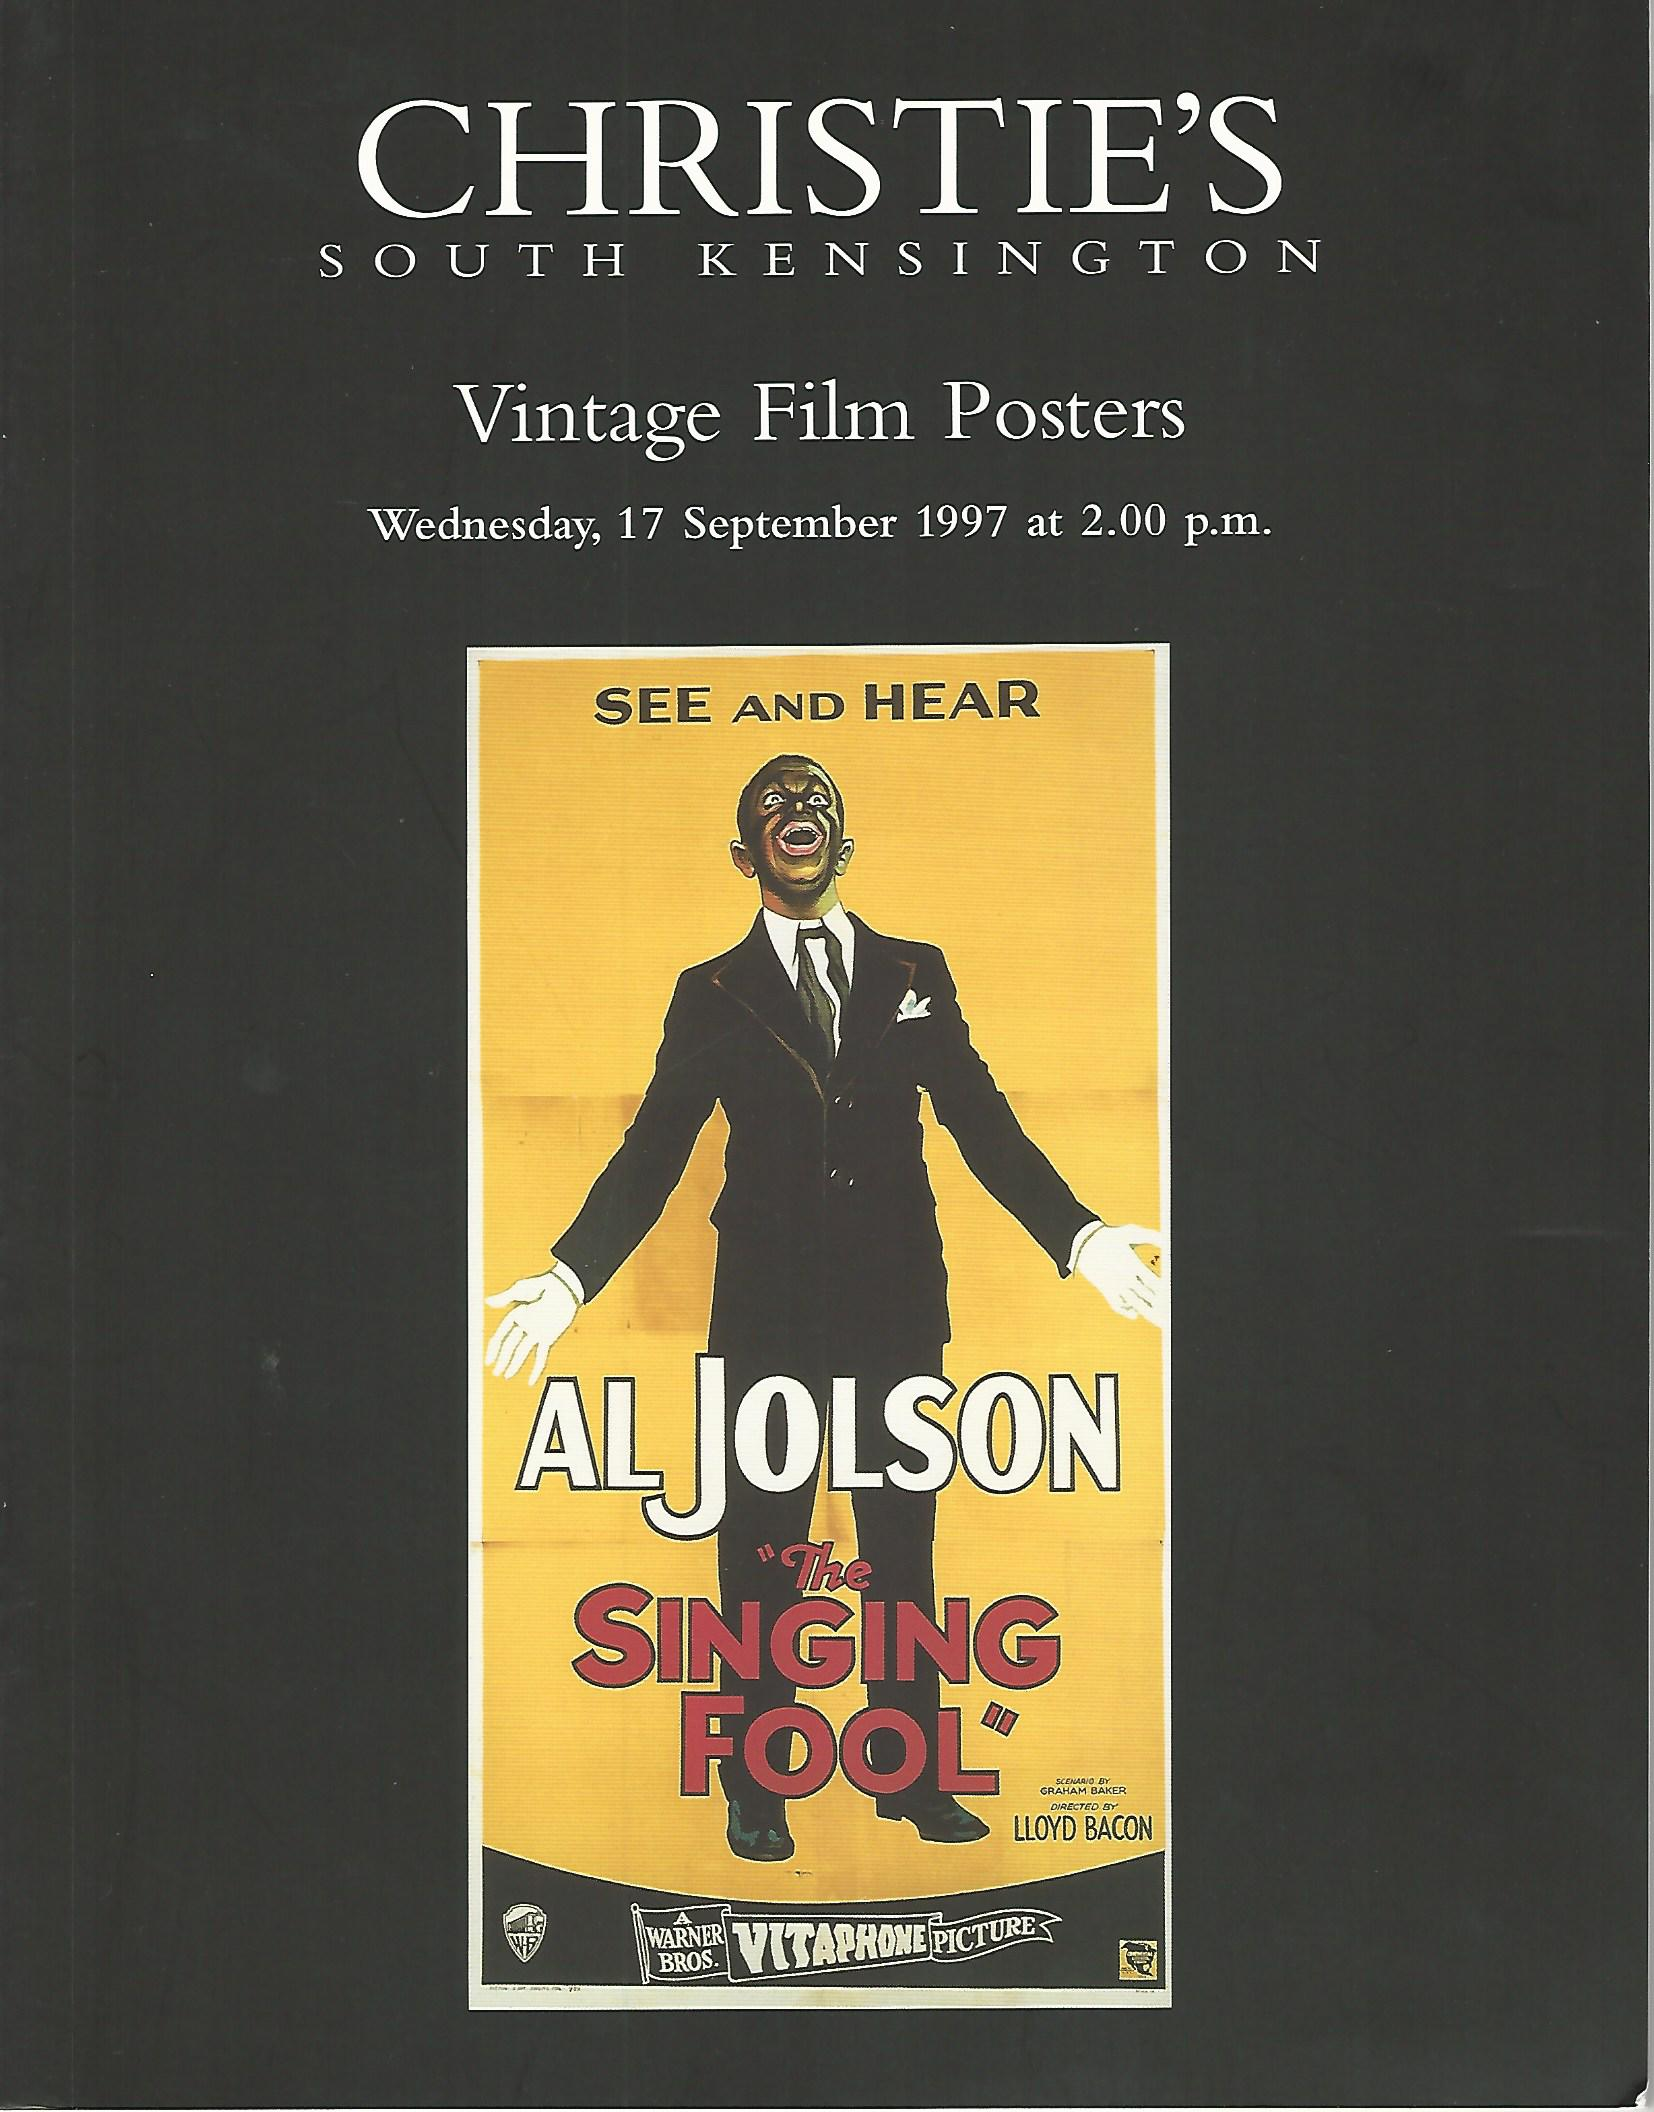 Image for Christie's Vintage Film Posters, Wednesday 17 September 1997.